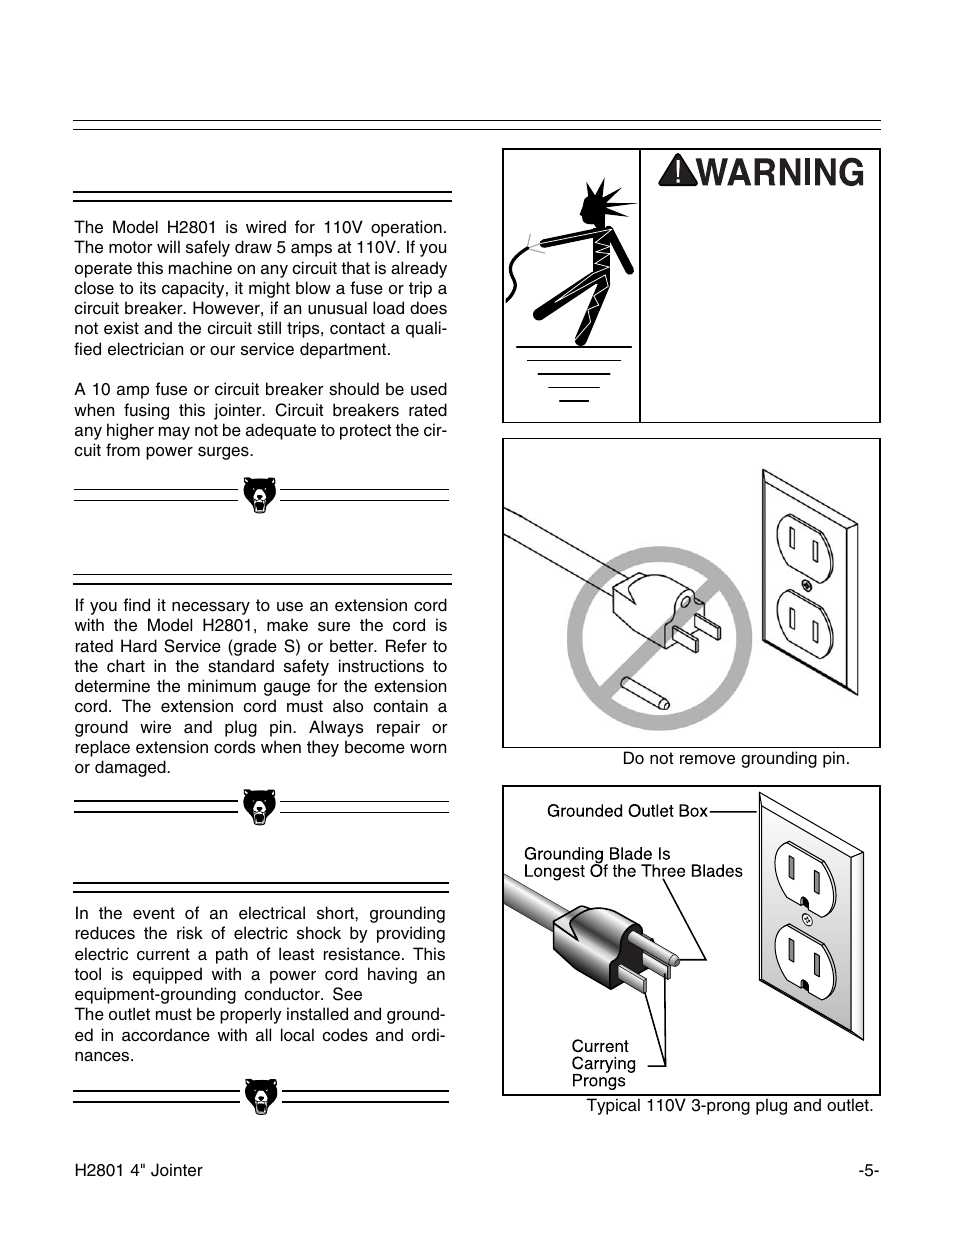 medium resolution of 110v operation extension cords grounding grizzly h2801 user manual page 7 32